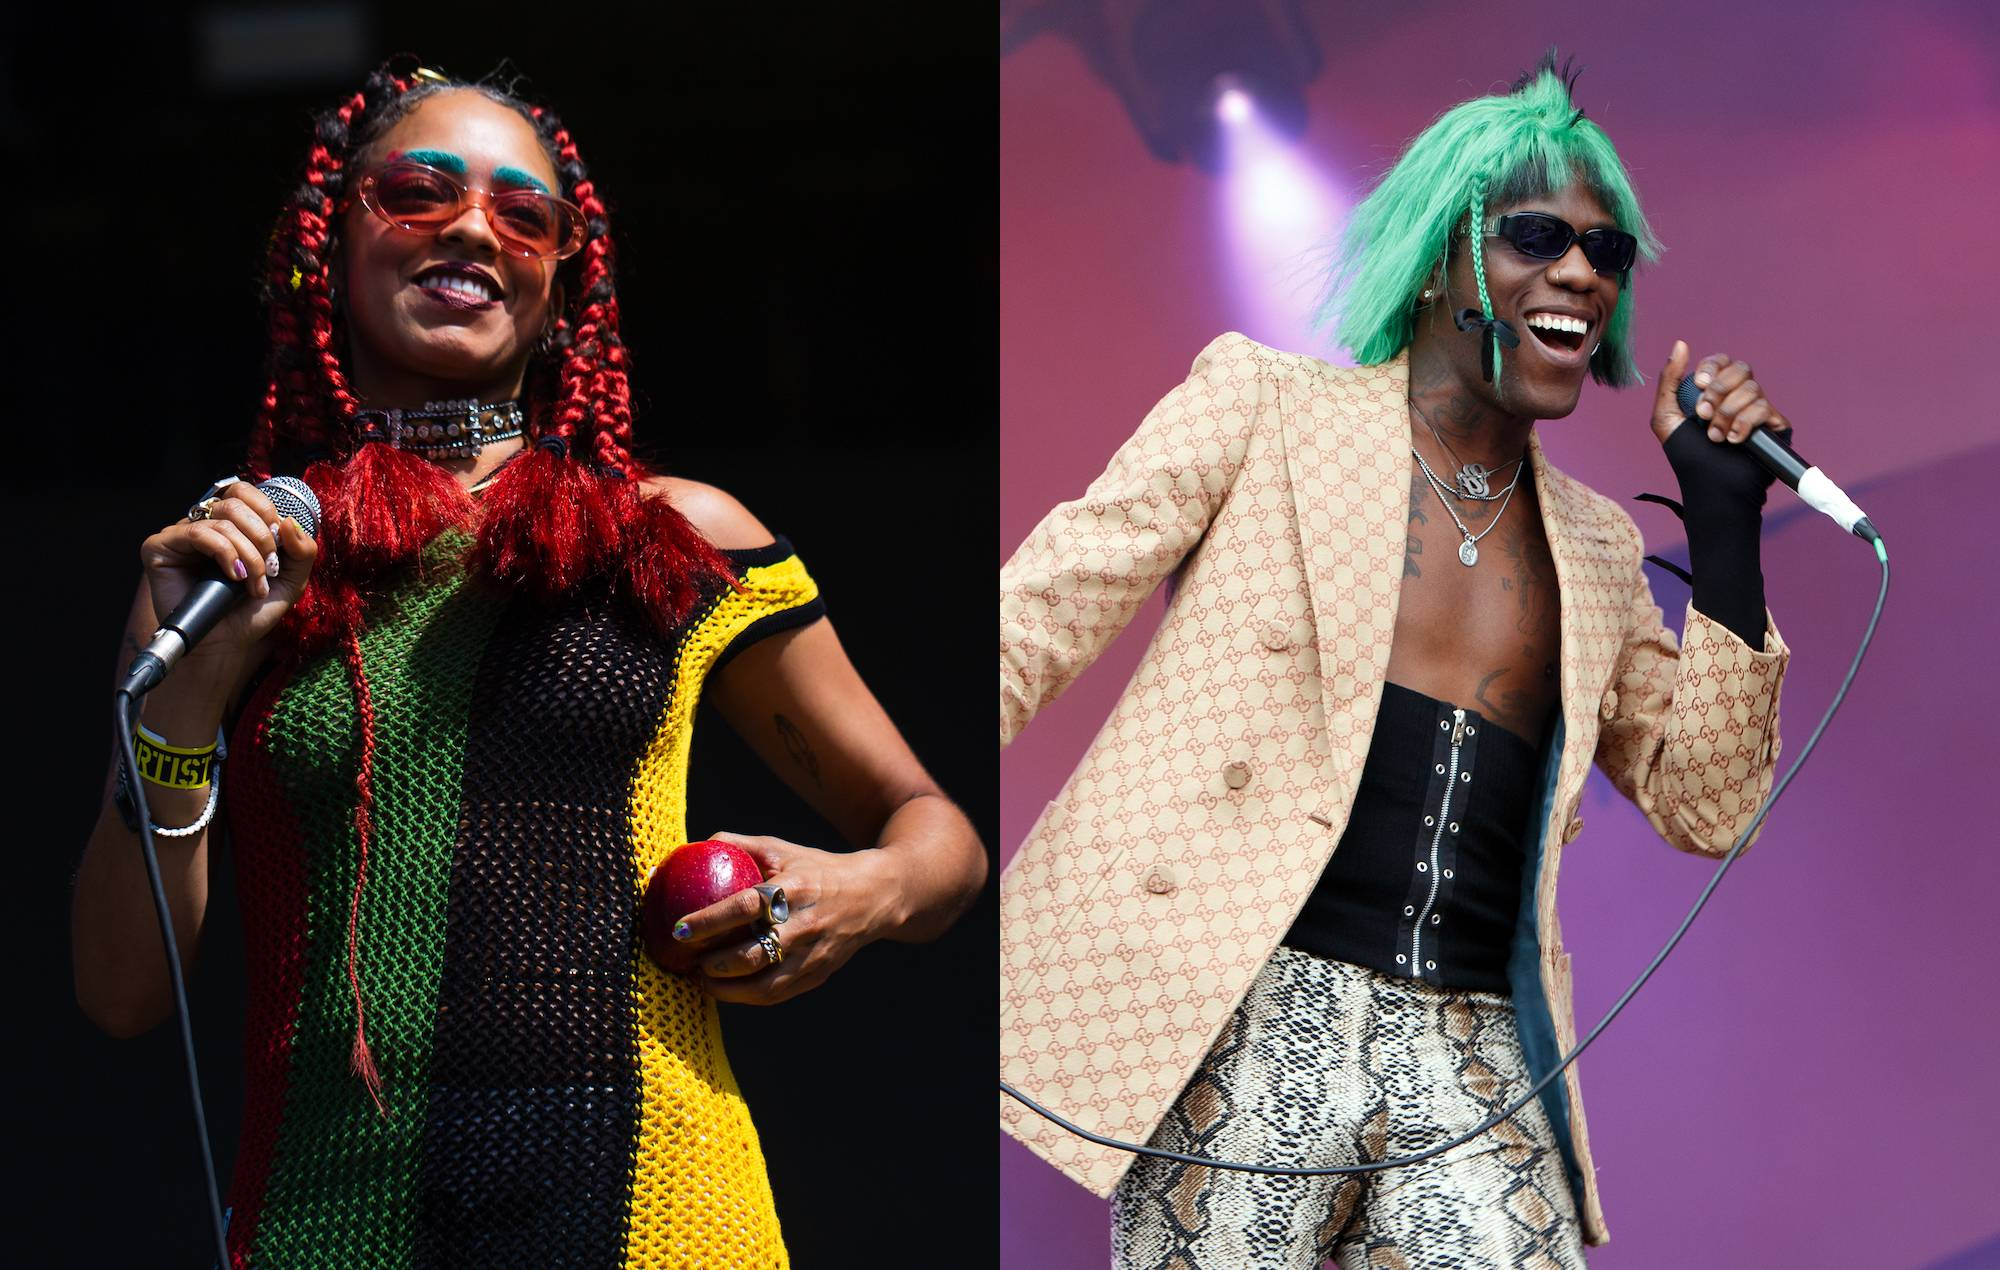 Kelsey Lu and Yves Tumor collaborate on atmospheric new song